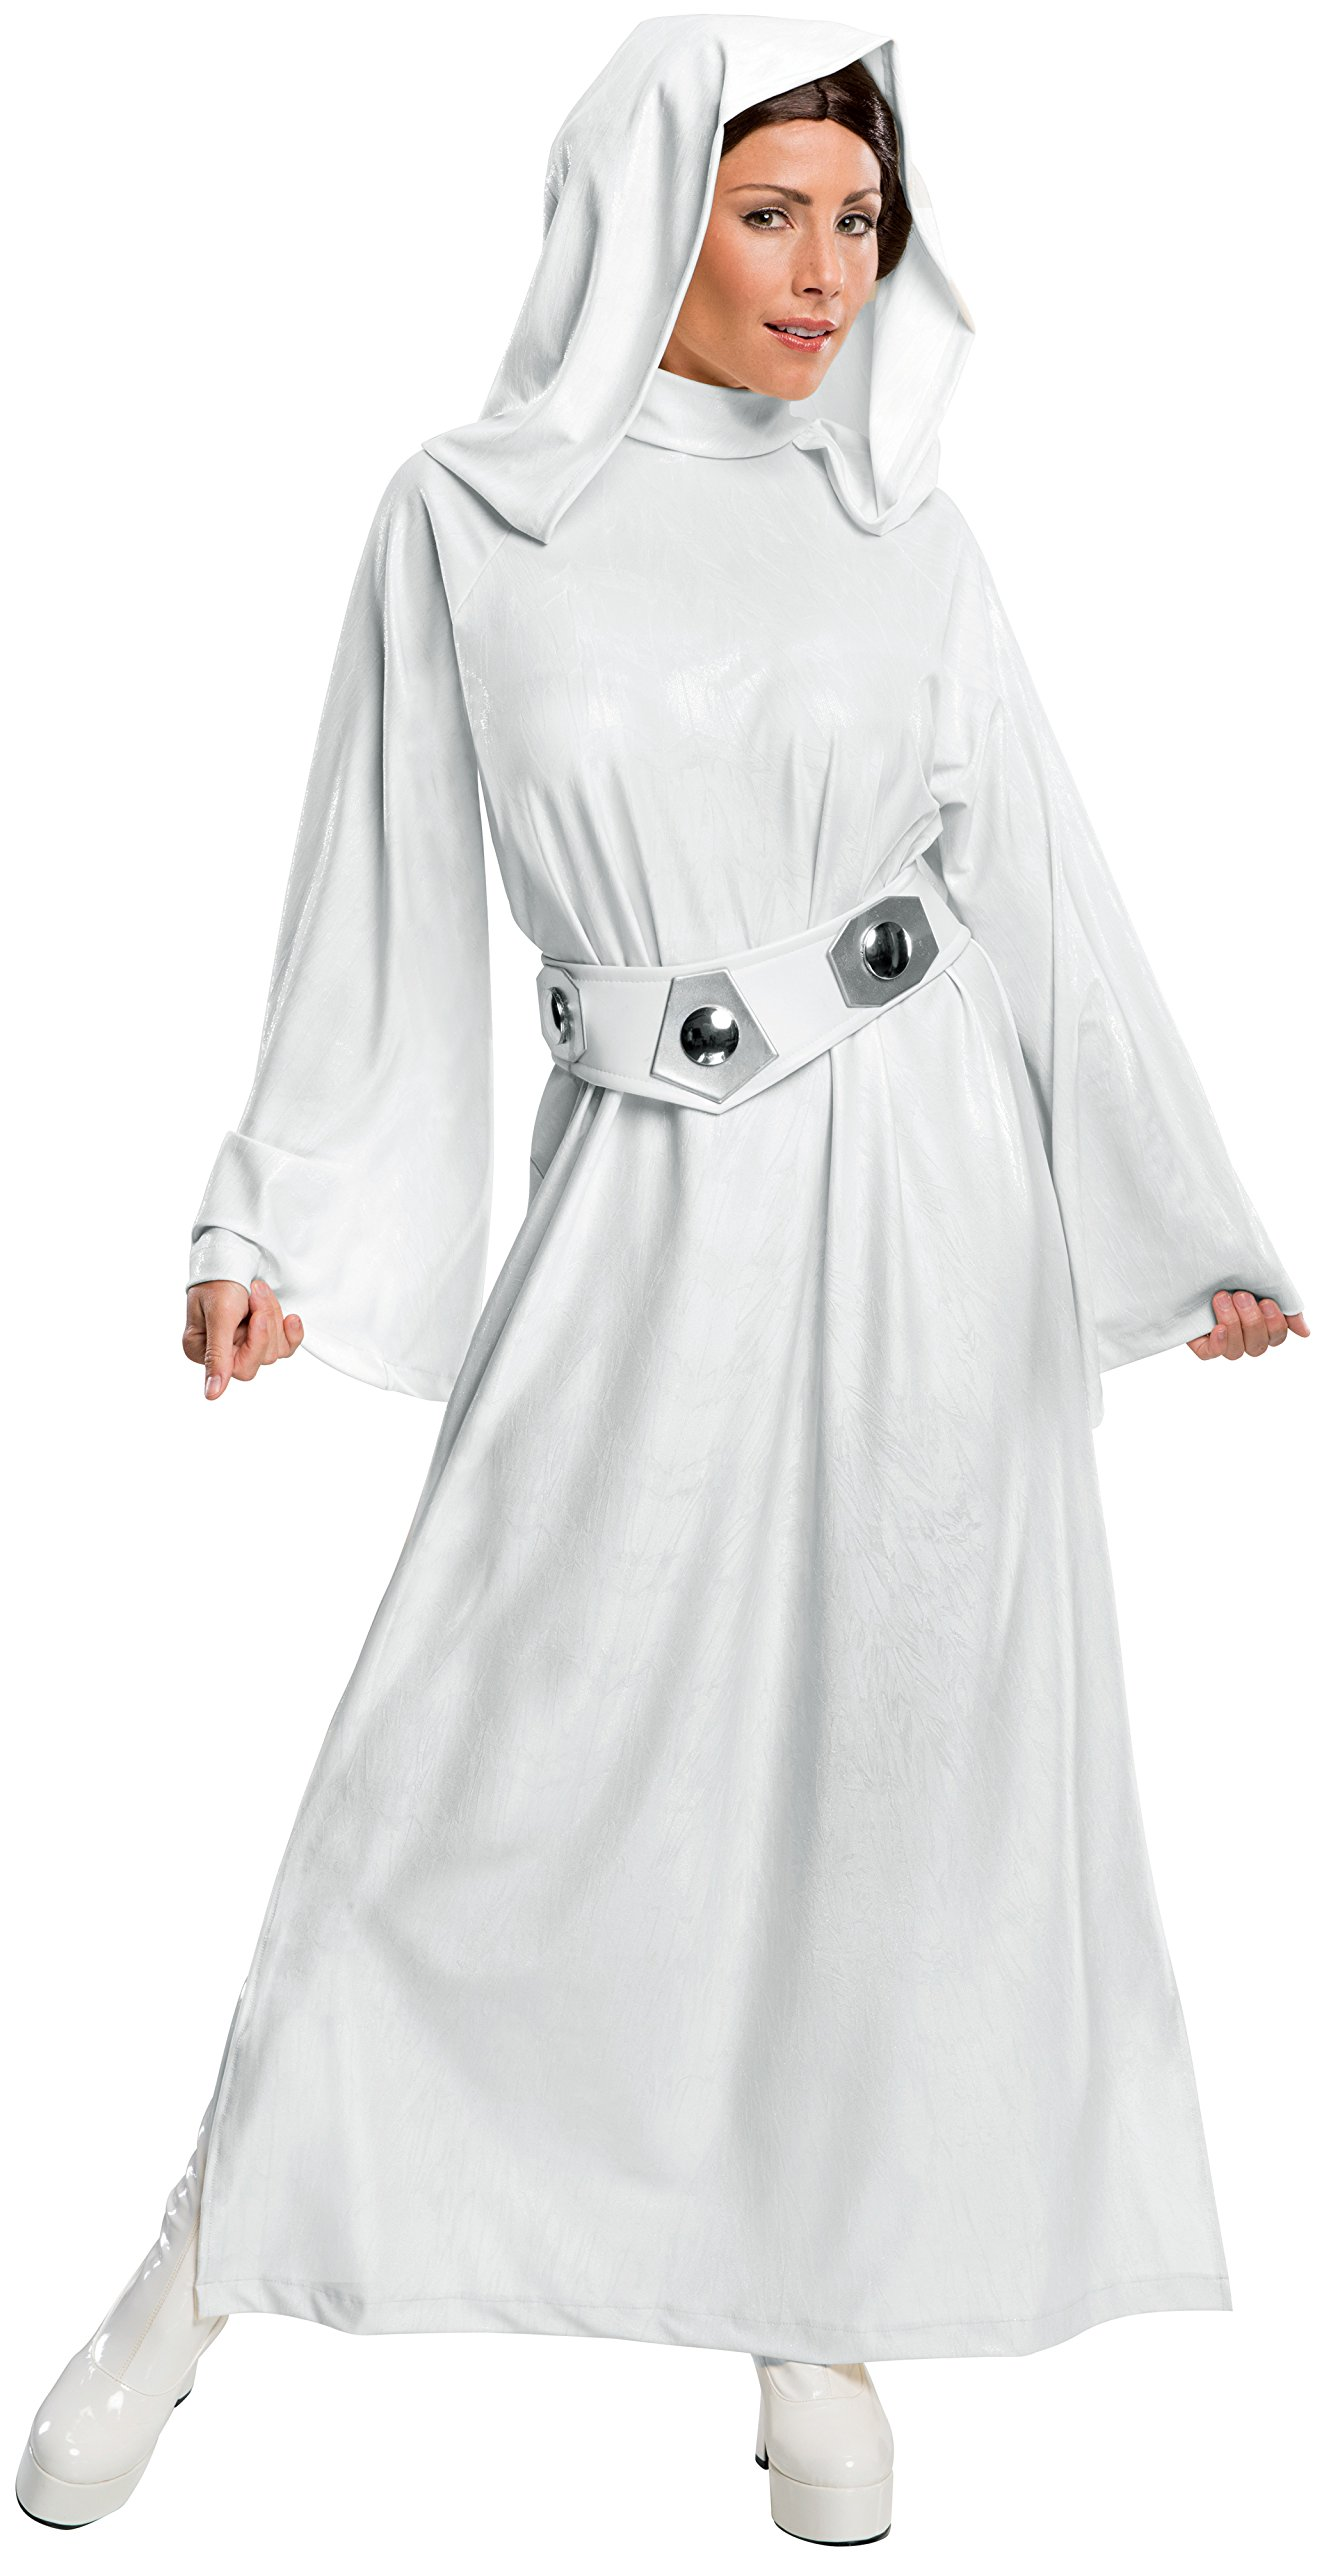 Rubie's Women's Star Wars Classic Deluxe Princess Leia Costume,White,Large by Rubie's